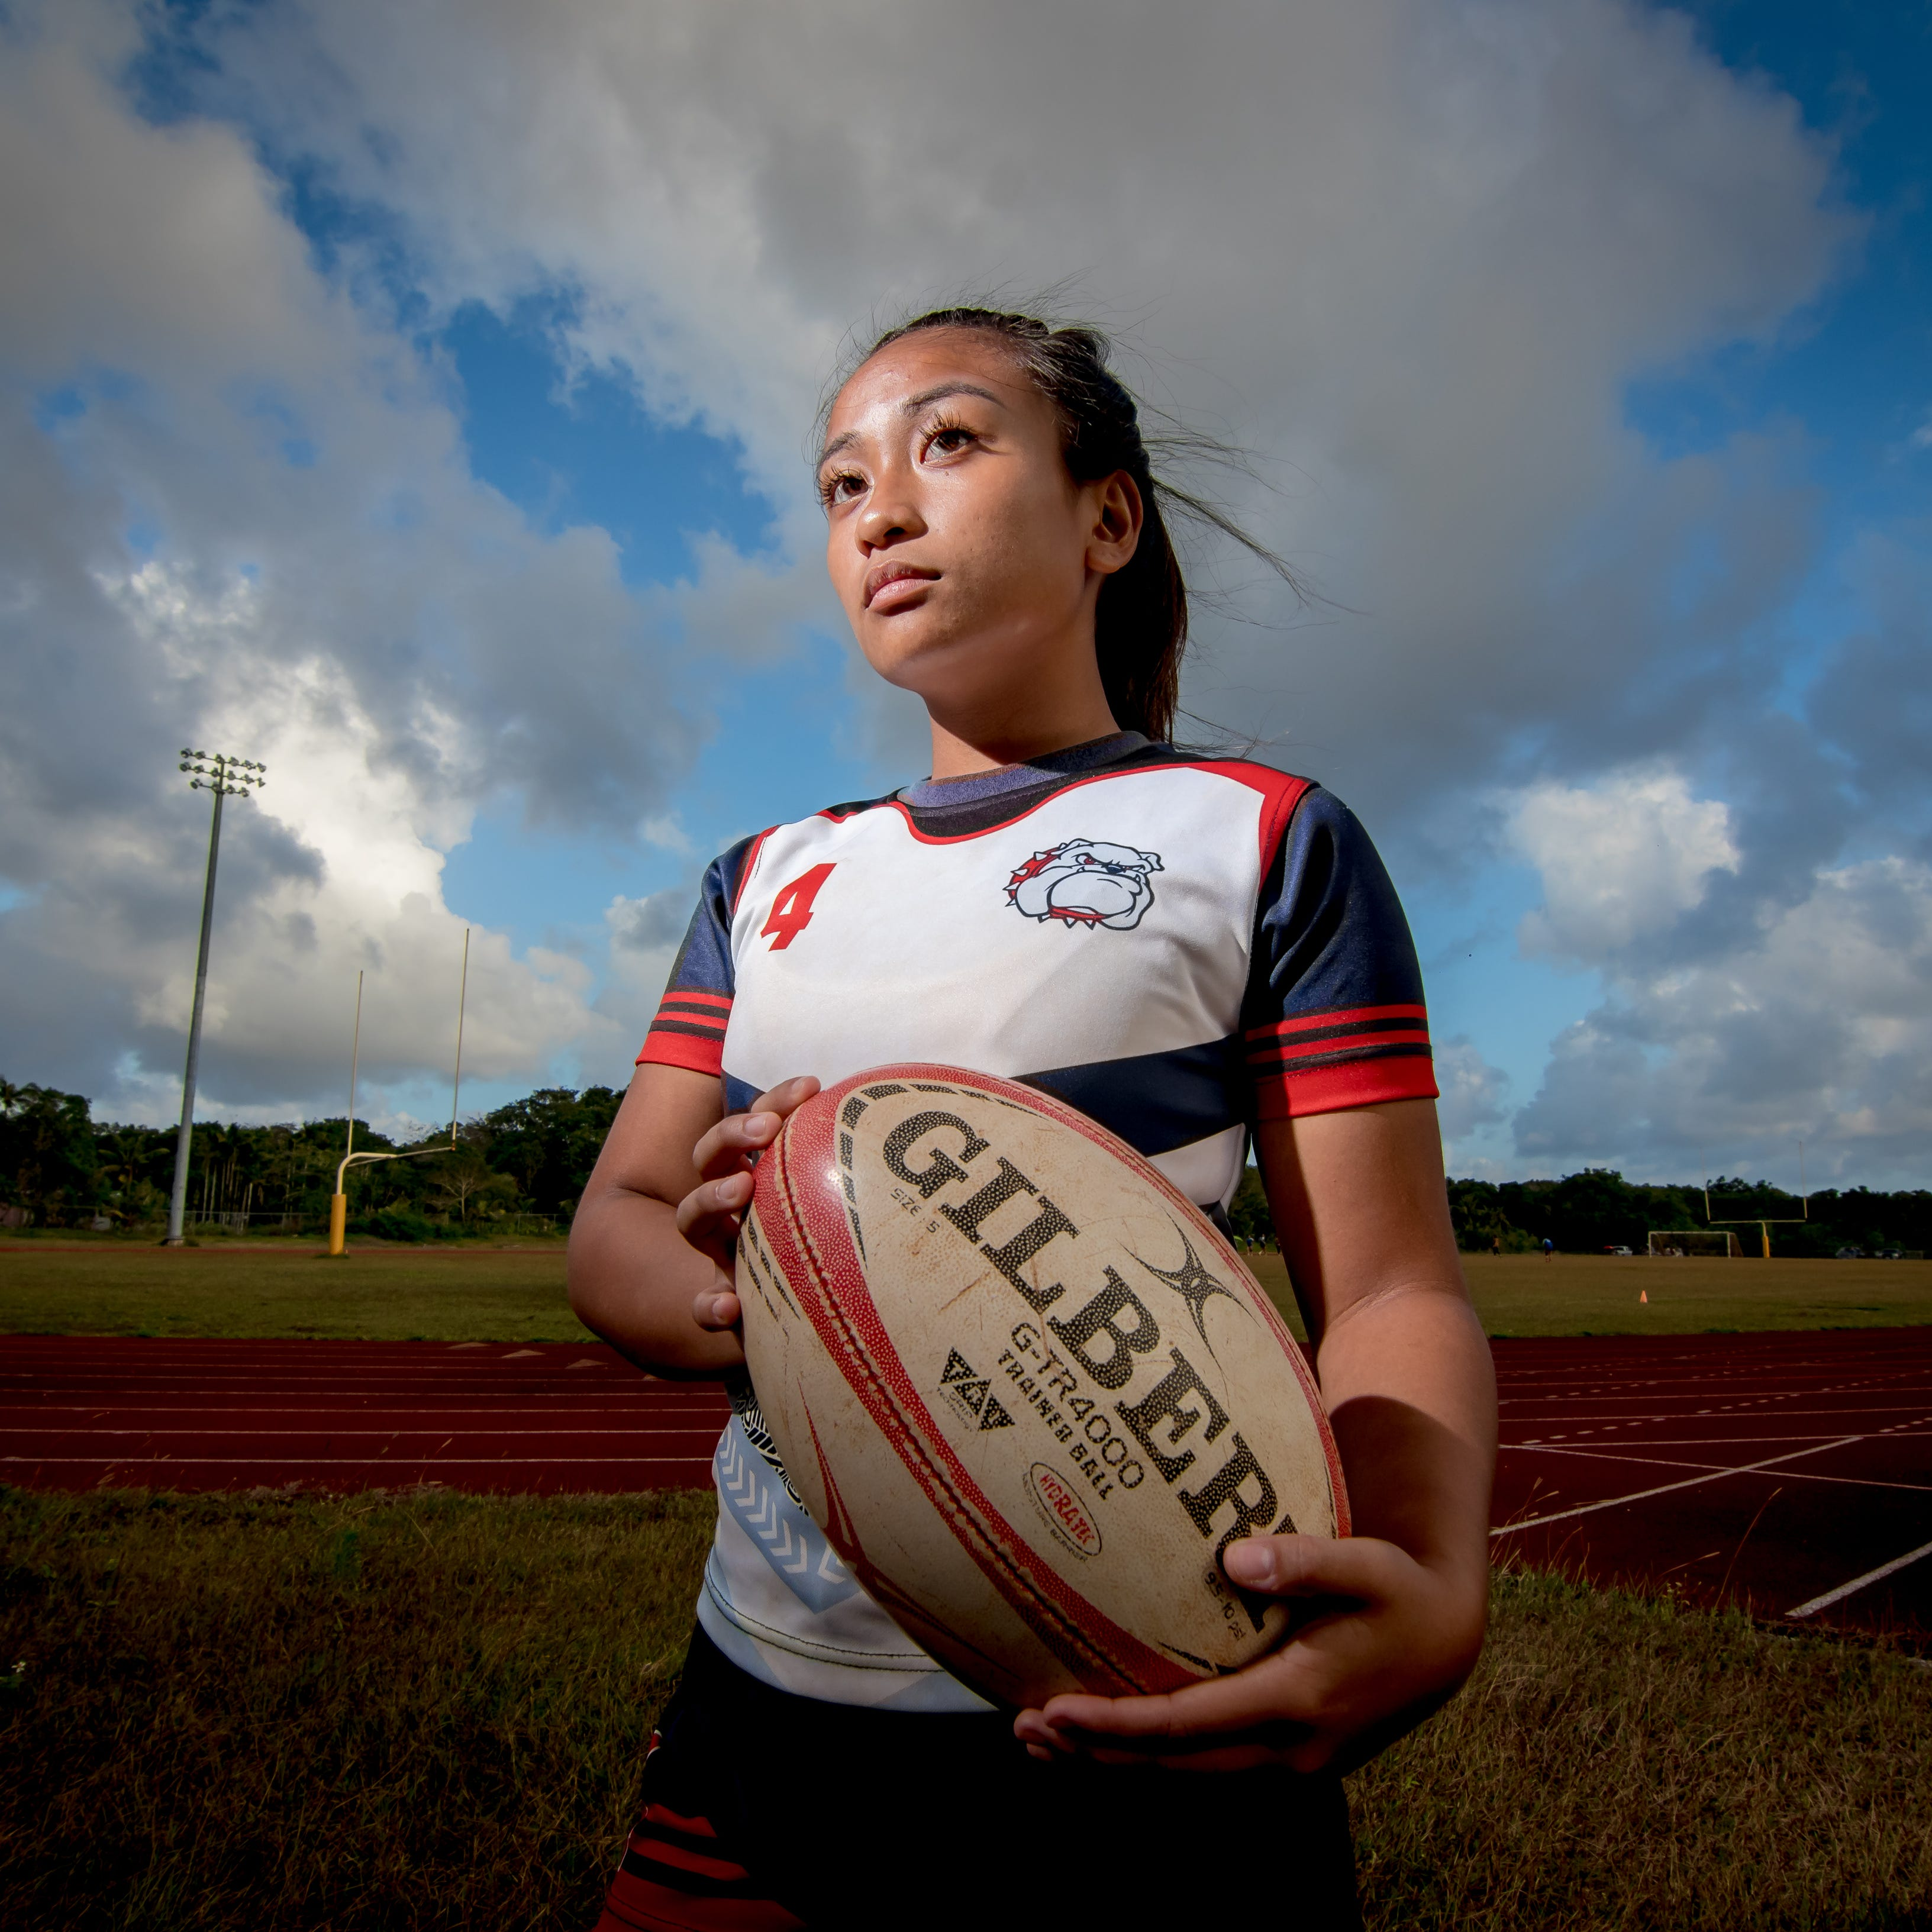 'Guam girls play with more heart': How Mara Tamayo persevered to become a star rugby player